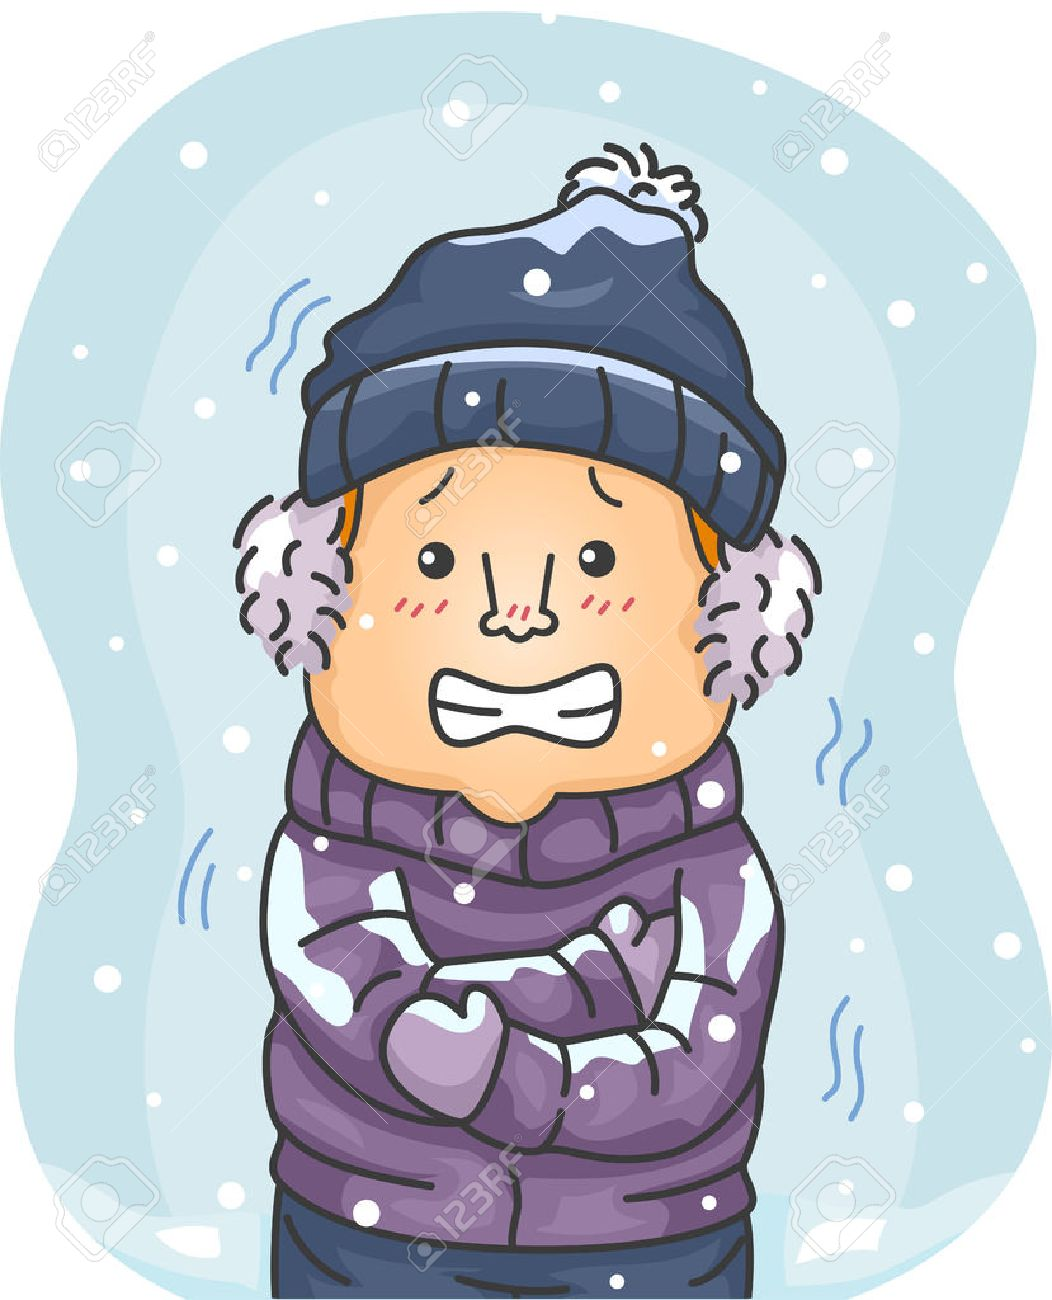 Hace frio clipart 6 » Clipart Station.